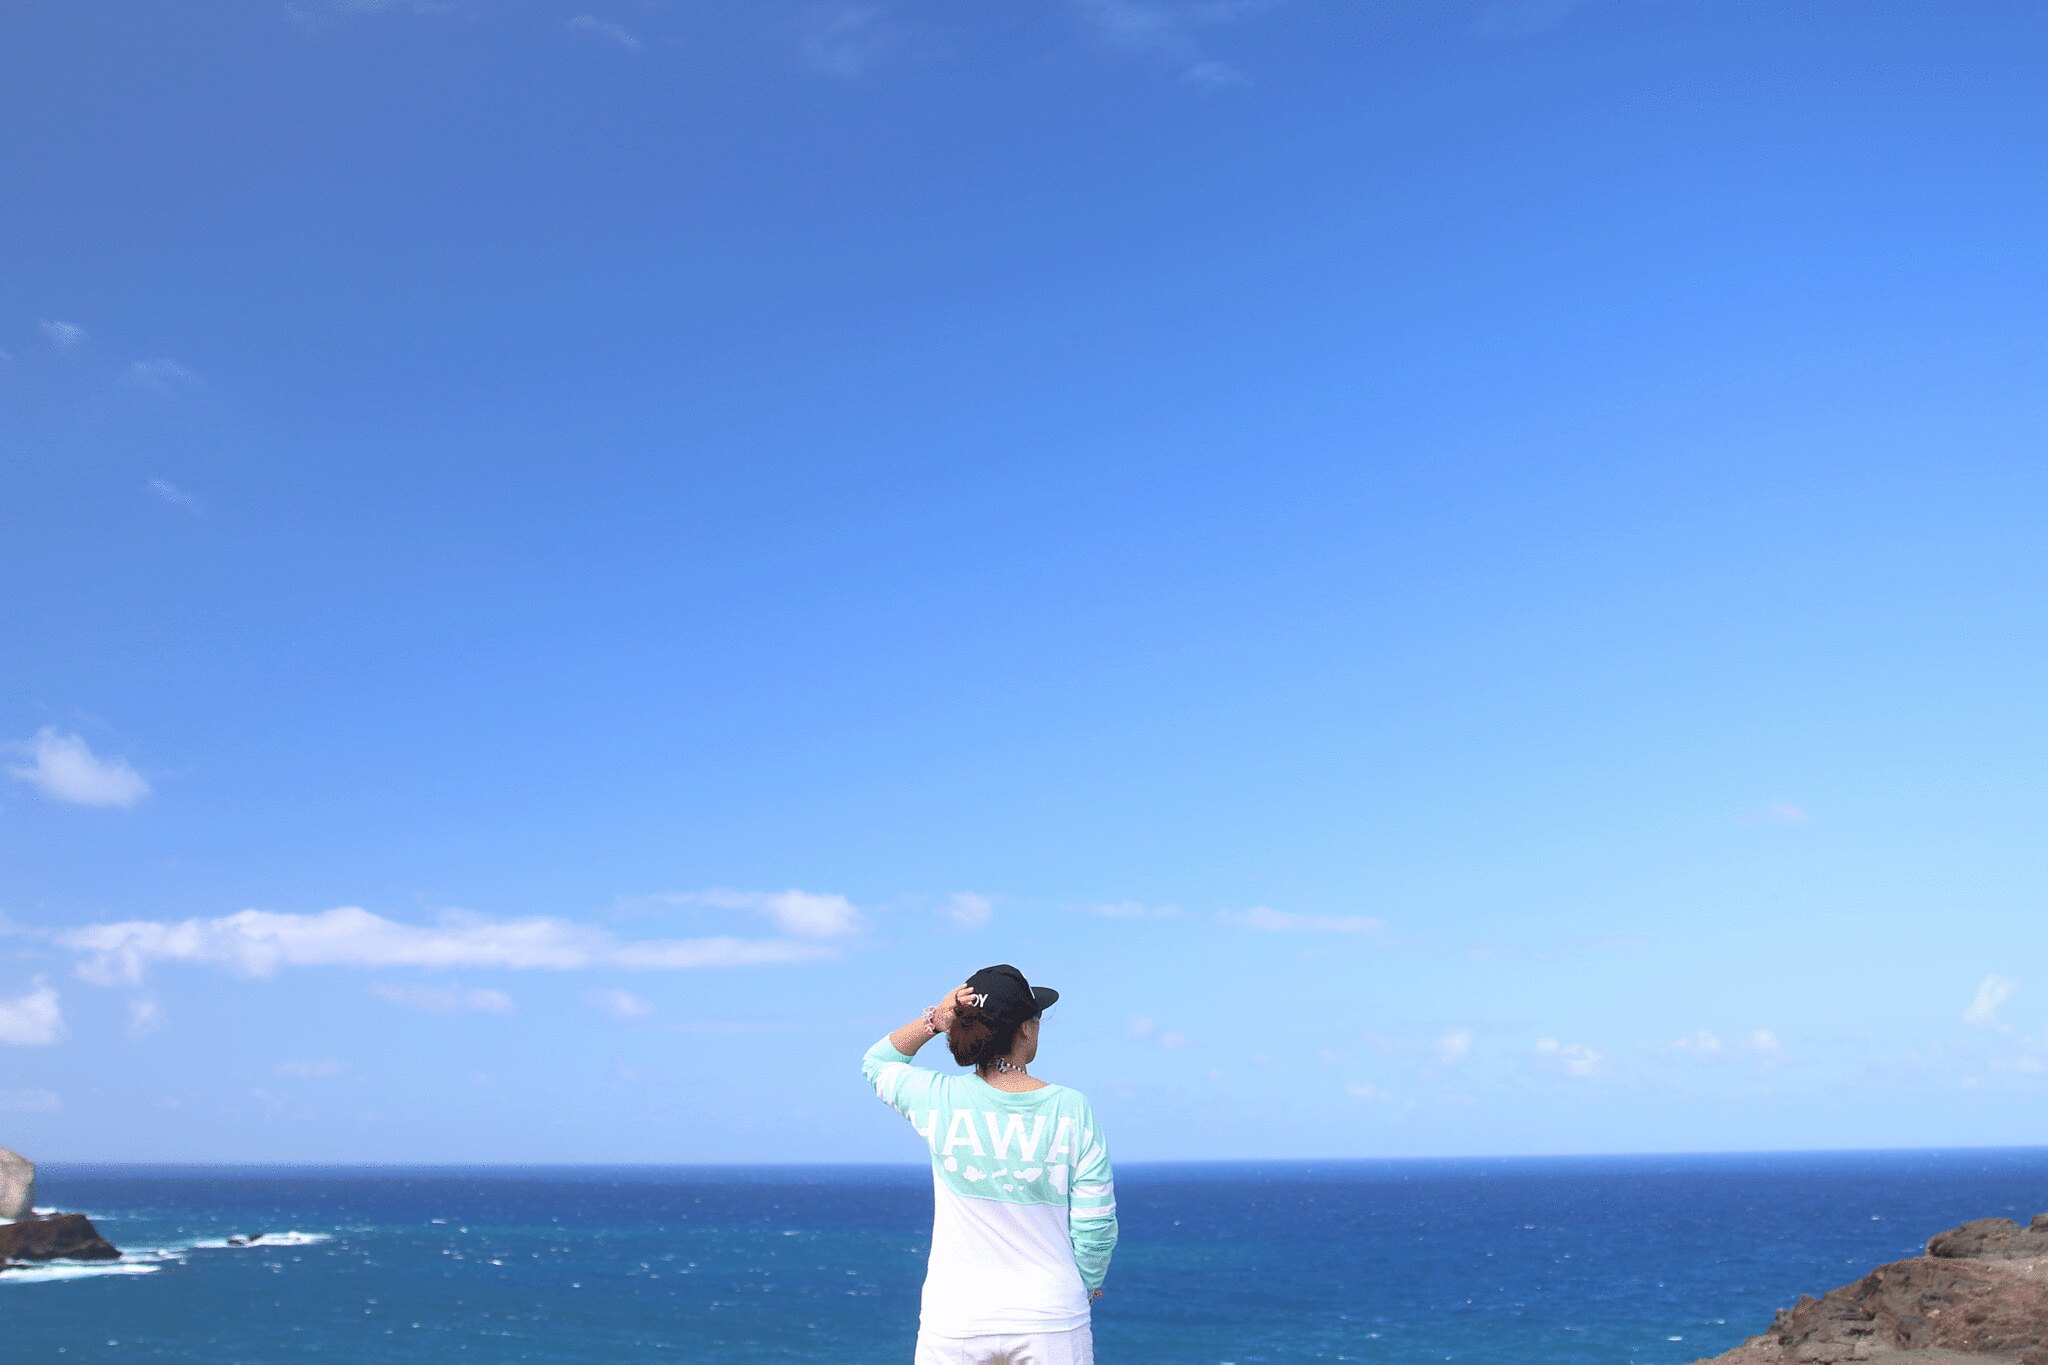 simplyxclassic, travel guide to oahu, hawaii, what to do in hawaii, blogger, fashion, lifestyle blogger, travel